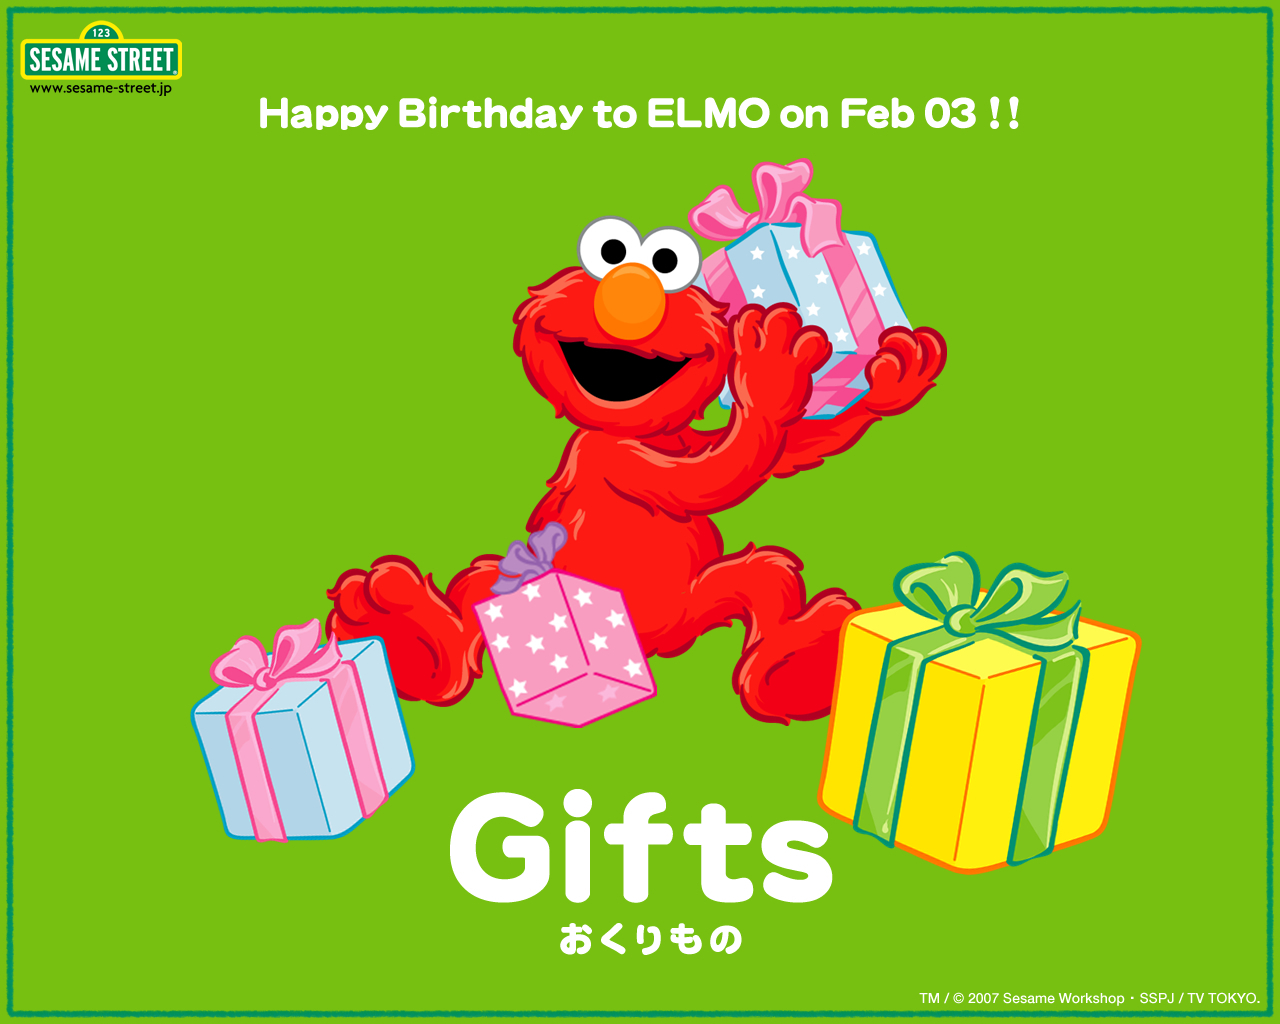 Free Download Elmo Elmo Wallpaper 17902583 1280x1024 For